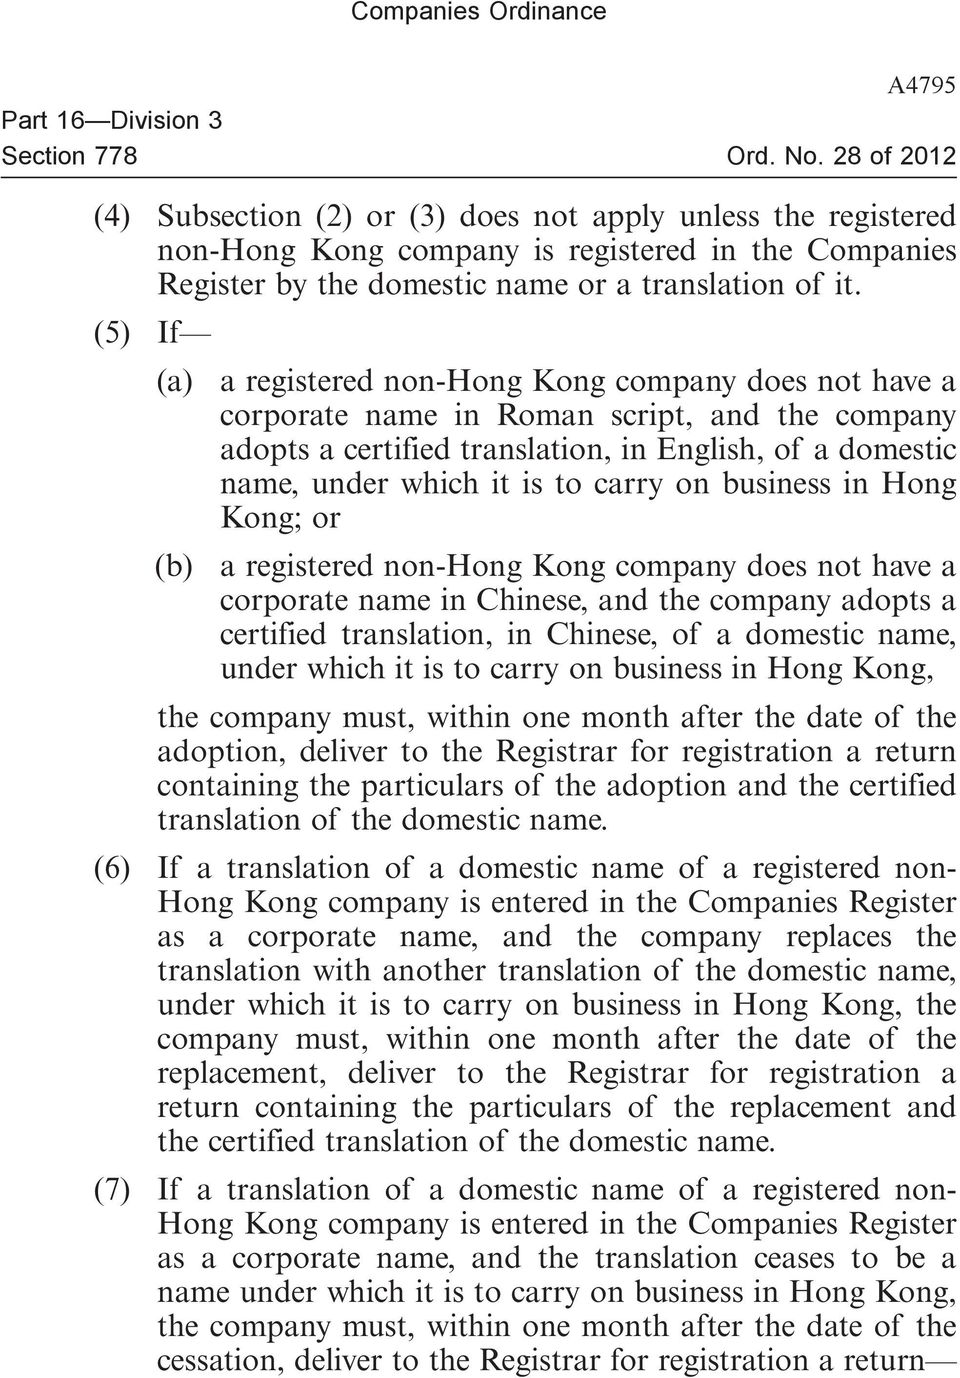 (5) If (a) a registered non-hong Kong company does not have a corporate name in Roman script, and the company adopts a certified translation, in English, of a domestic name, under which it is to